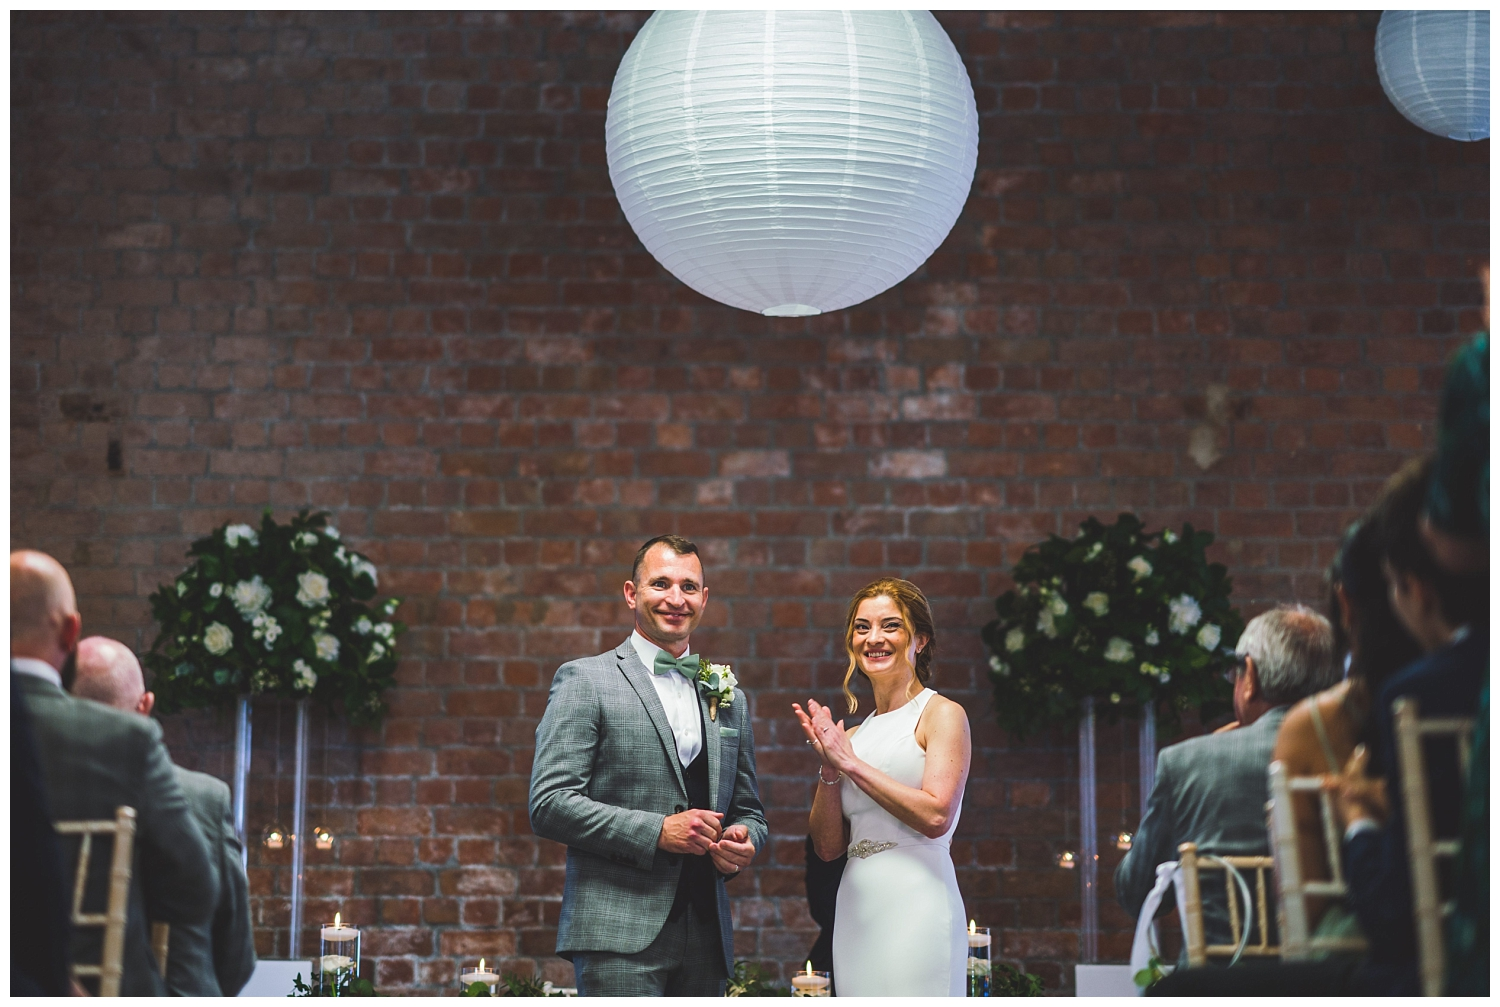 Couple just married at the Titanic Hotel in Liverpool